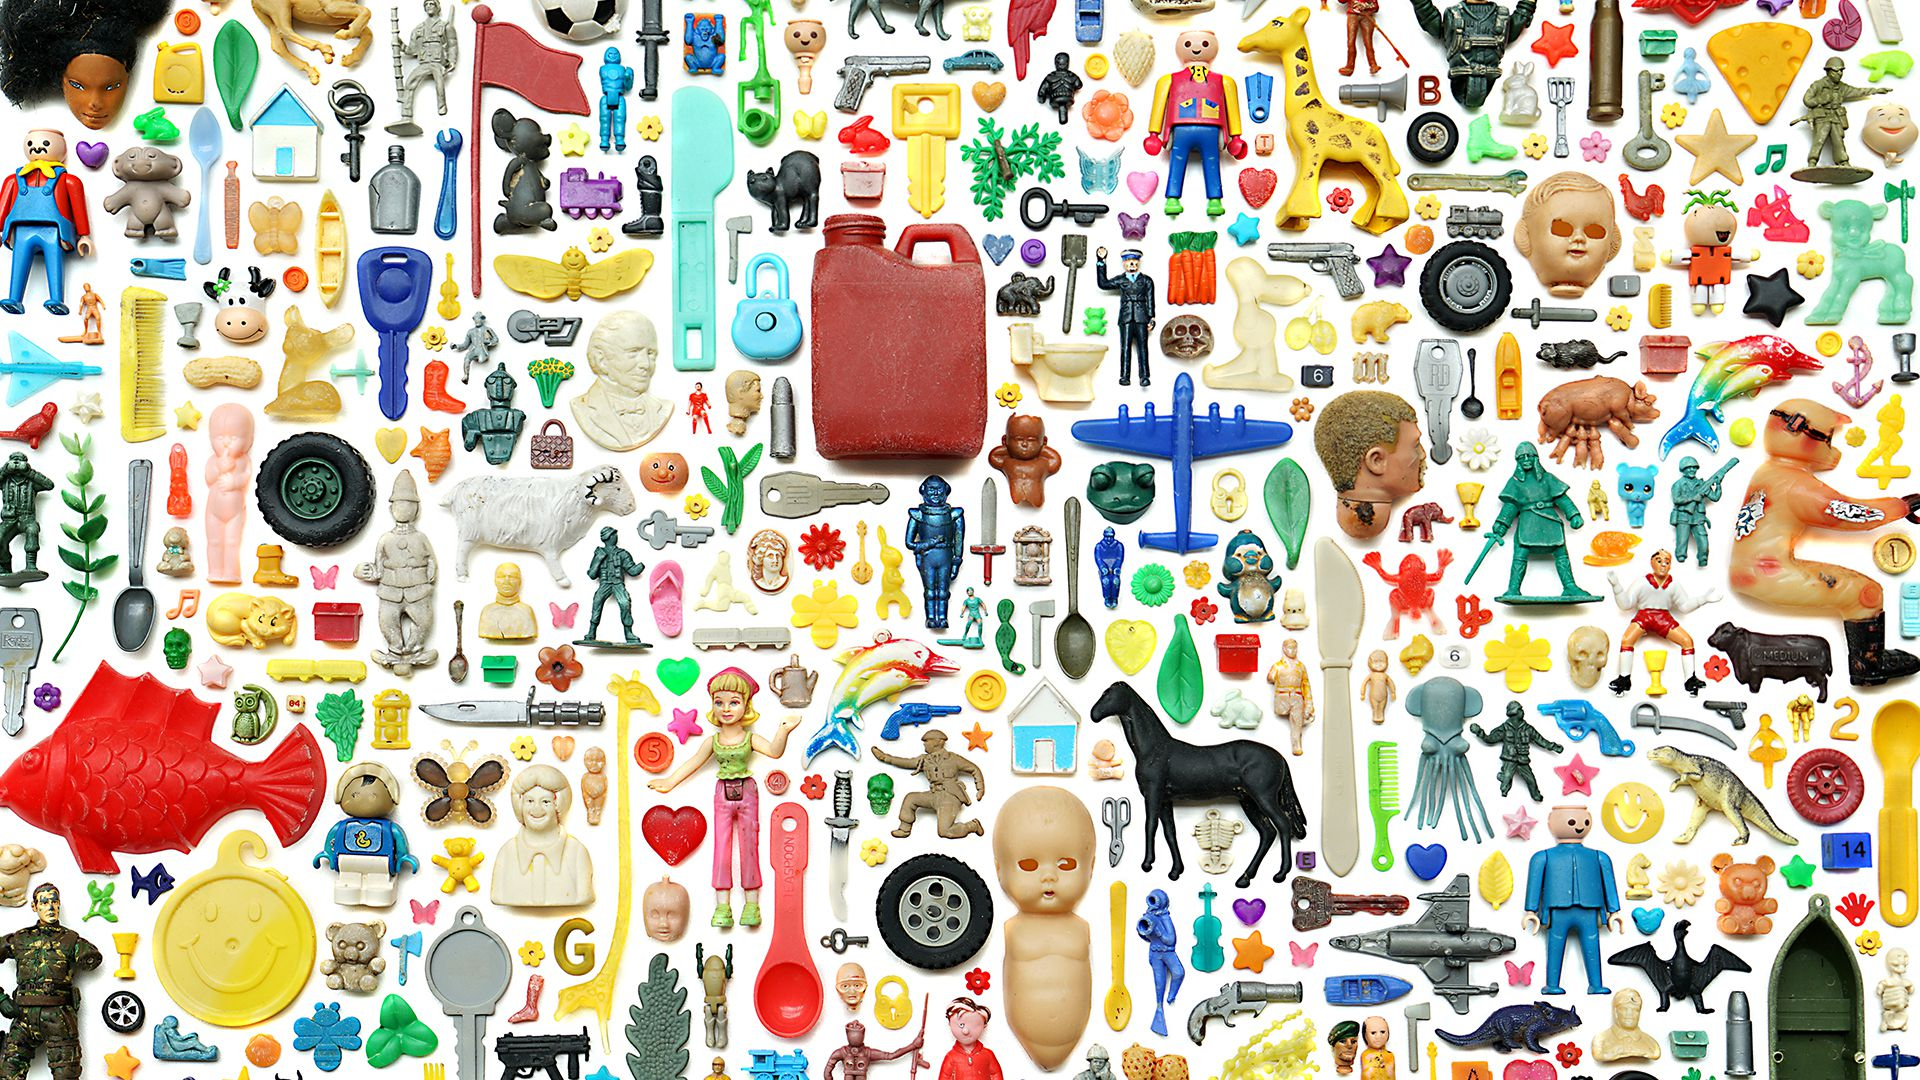 Image of many assorted, small plastic objects like doll heads, planes, eating utensils, arranged into a montage.